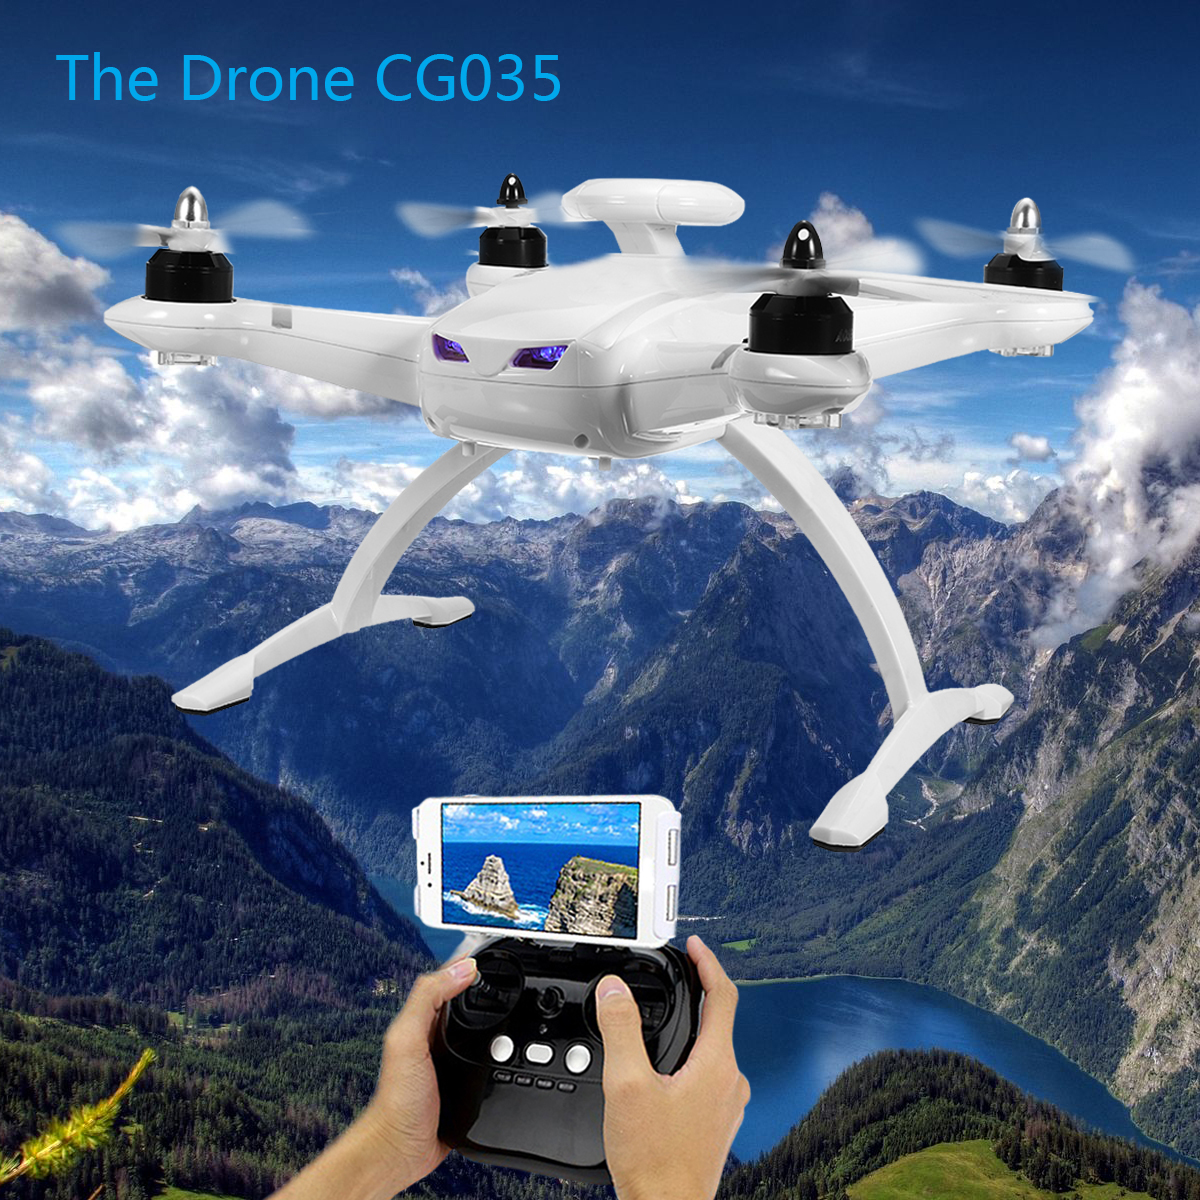 AOSENMA CG035 2.4G 4CH 6 Axis RTF Brushless Double GPS WIFI Camera FPV RC Drone Quadcopter Toy Gift